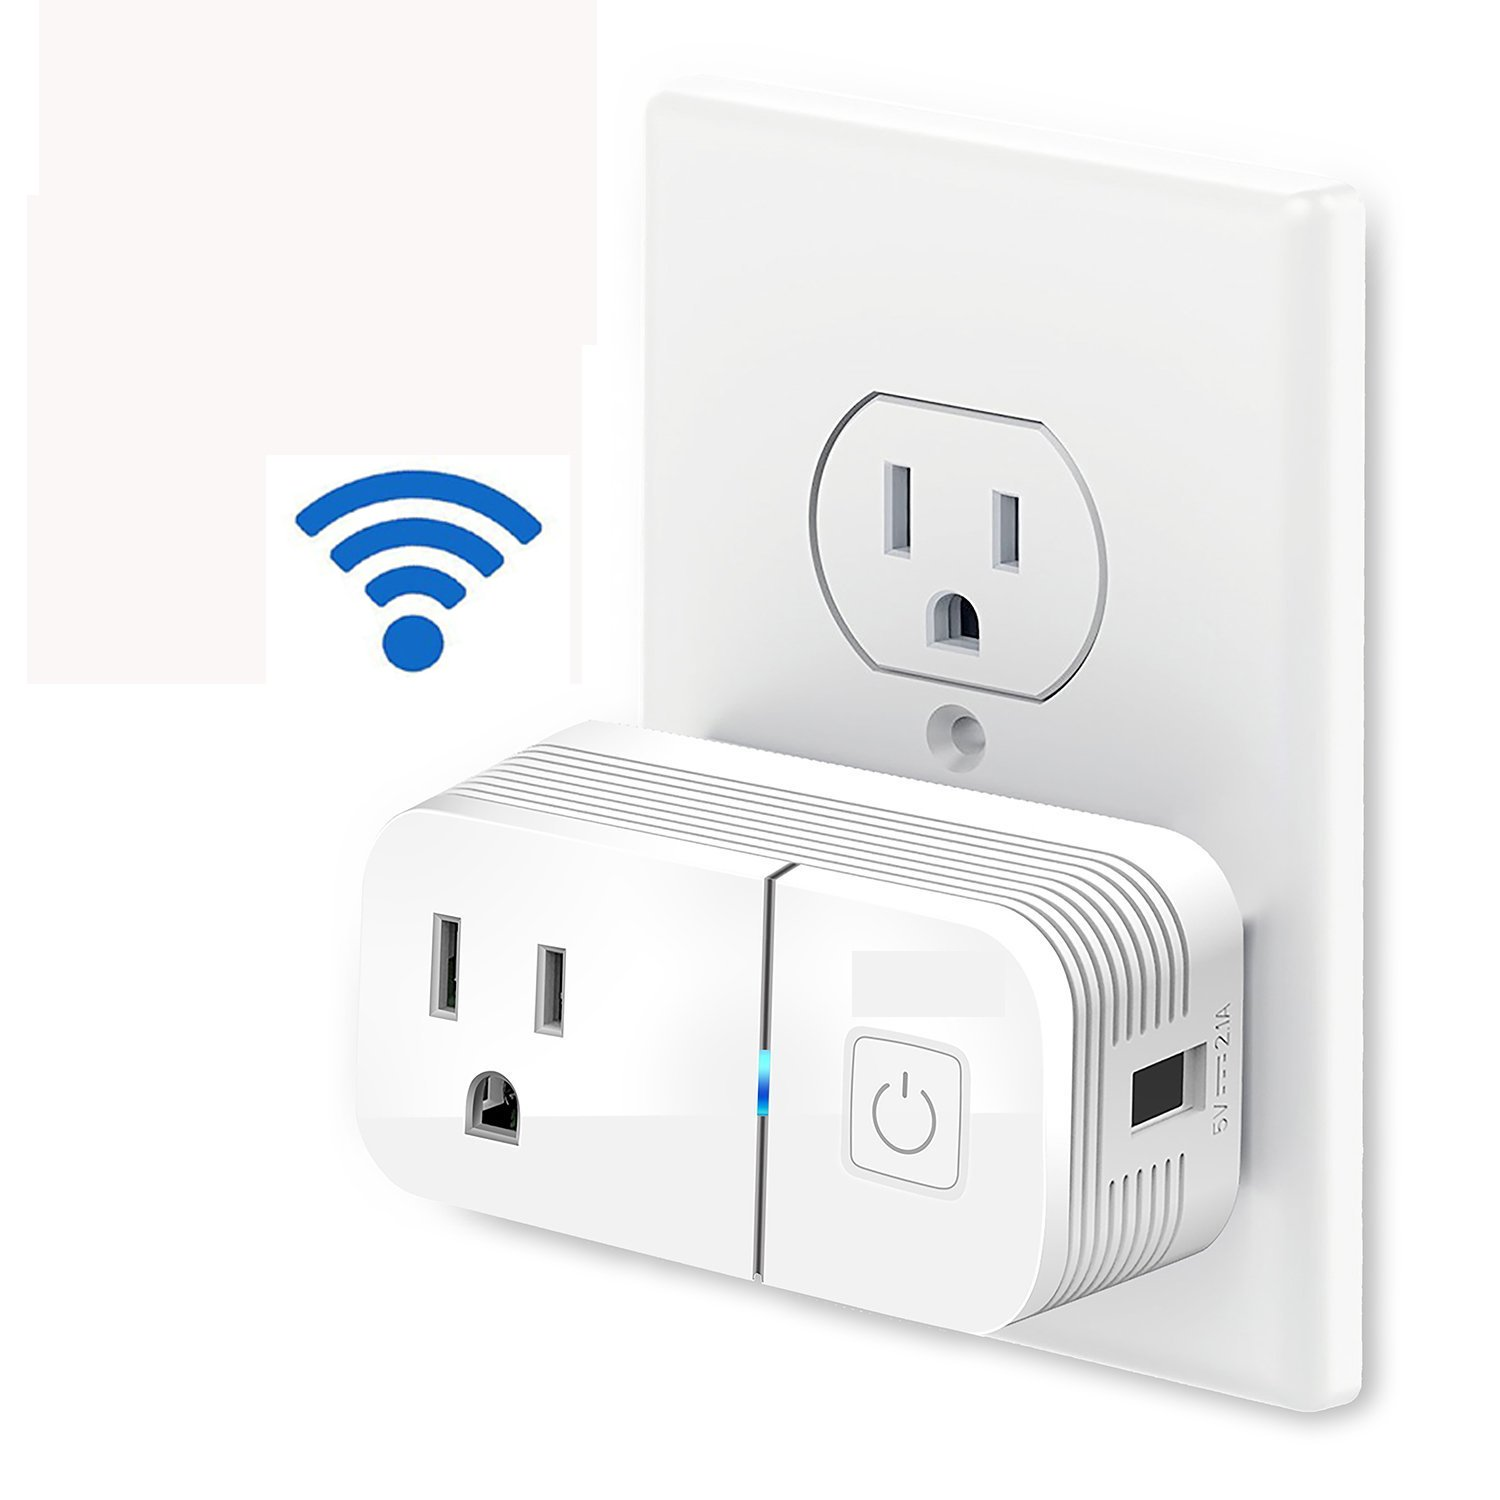 Wireless WiFi Smart Plug Outlet With Built In USB Port Compact, Lightweight & Easy To Use Fits 2 Mini Plugs Control Your Home, Lights & Appliances, Works With Alexa and Google Home.